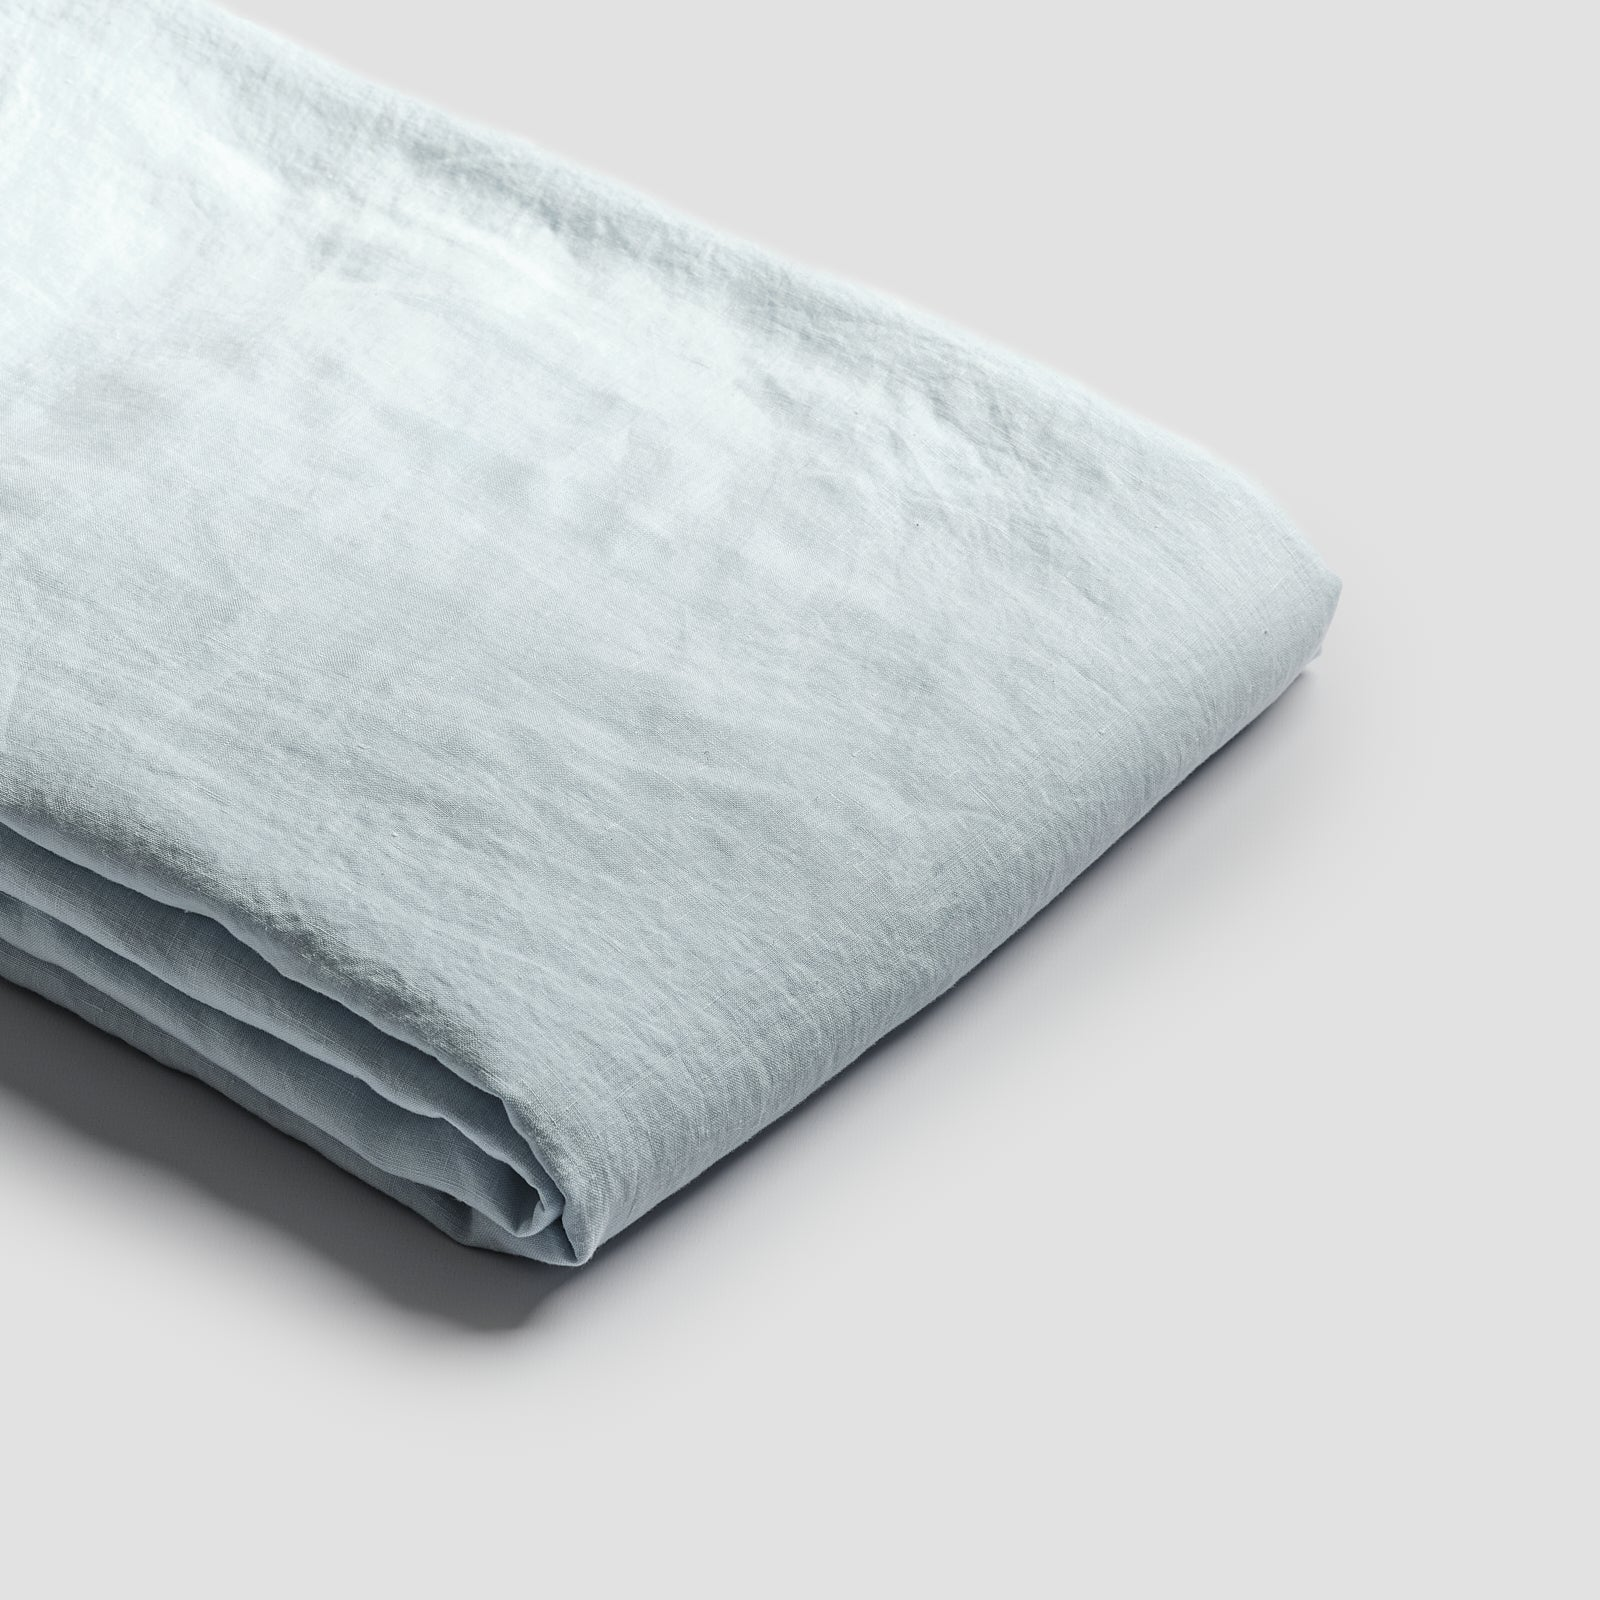 Piglet Lake Blue Linen Duvet Cover Size Super King   100% Natural Stonewashed French flax